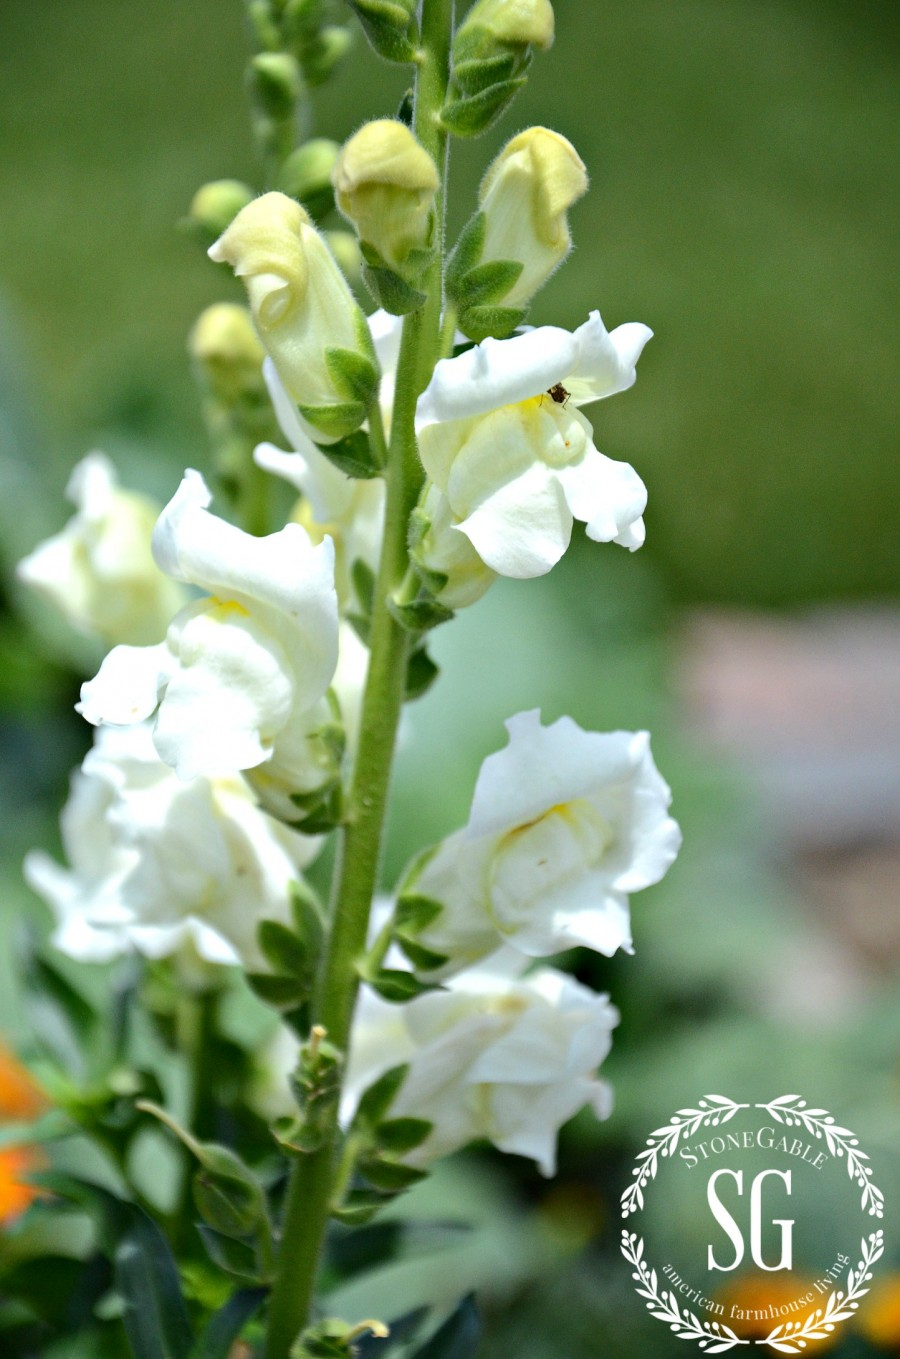 5 IMPORTANT THINGS TO KNOW WHEN GARDENING-snapdragons-stonegableblog.com